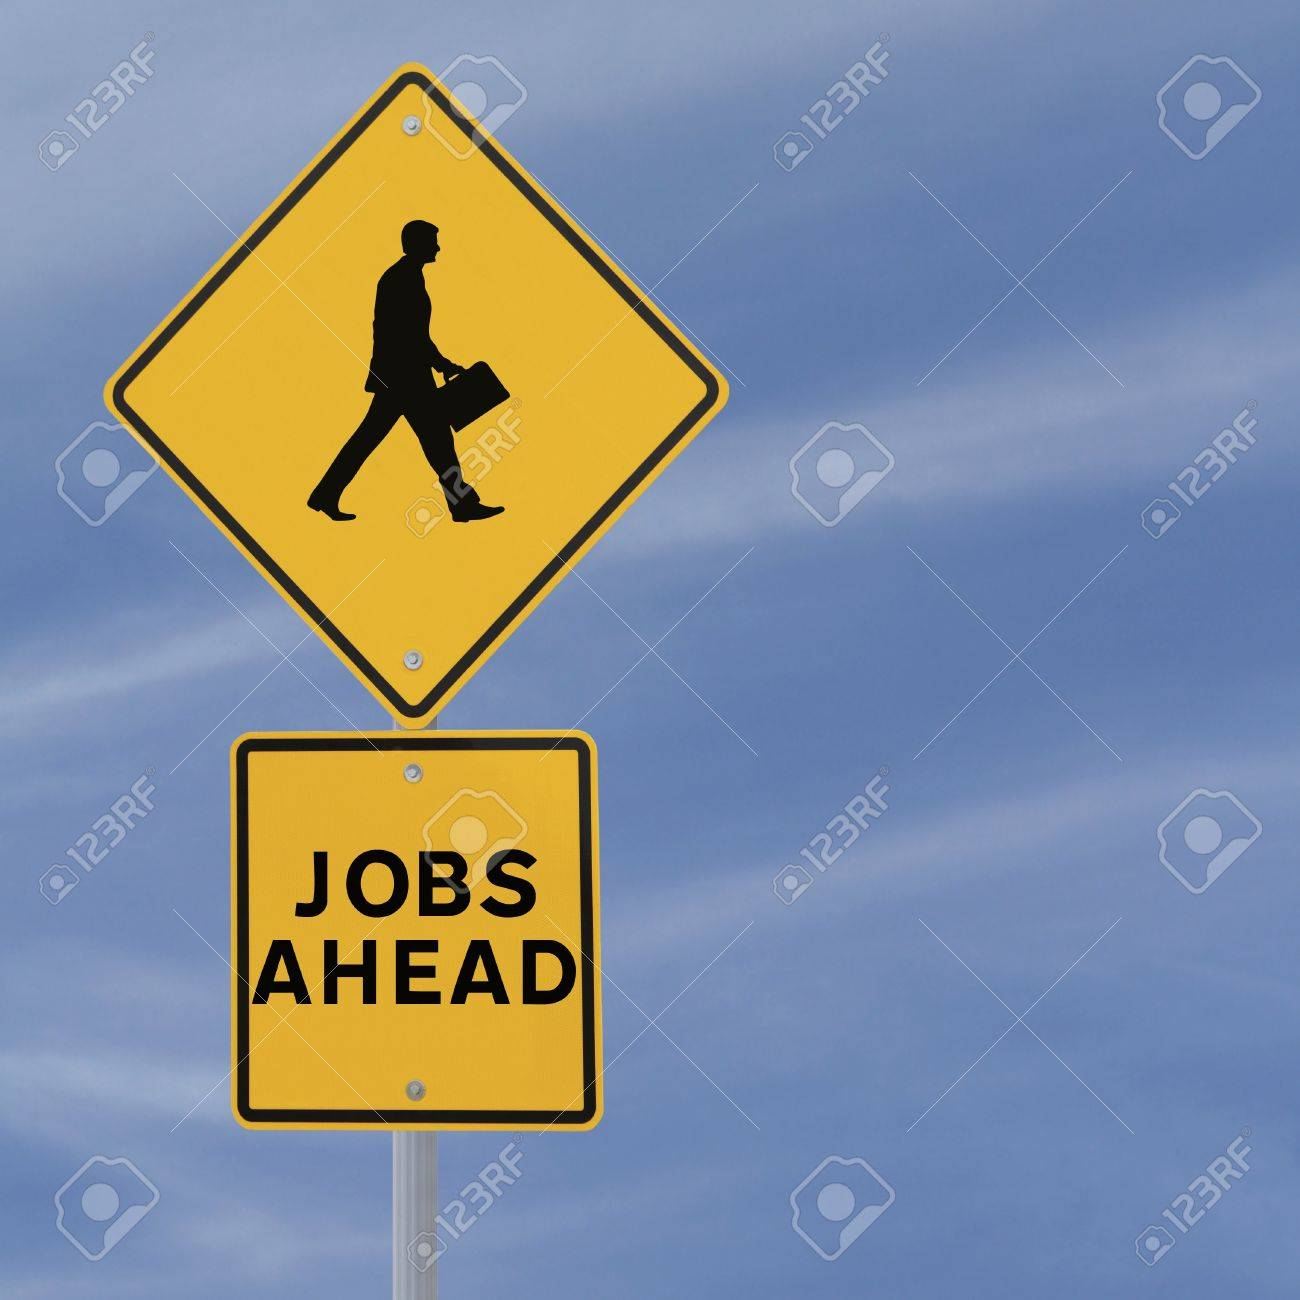 Jobs Ahead road sign with a silhouette of walking man  on a blue sky background with copy space Stock Photo - 14365677